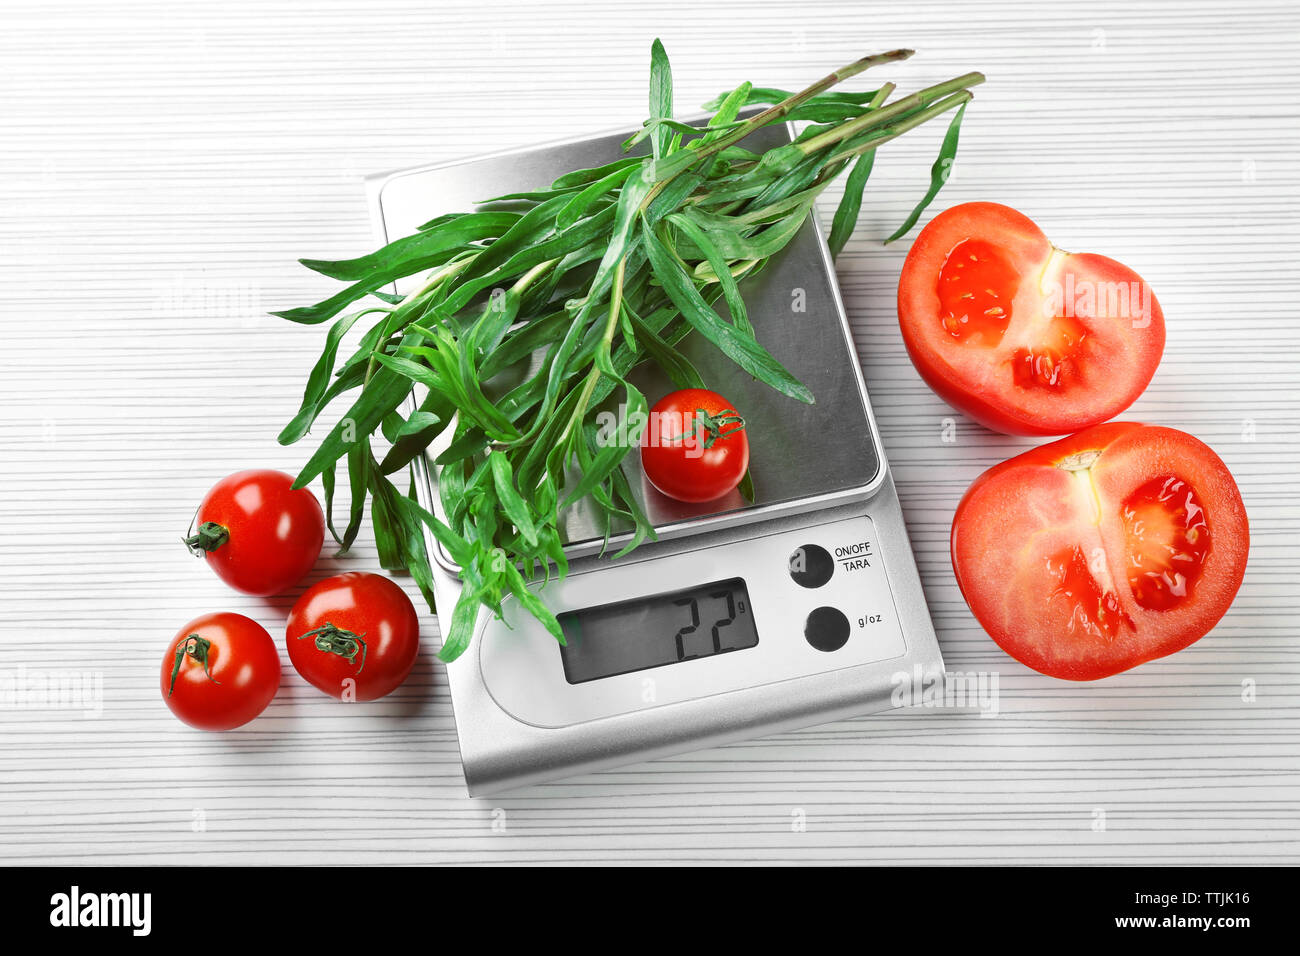 Tomatoes and tarragon with digital kitchen scales on wooden background - Stock Image